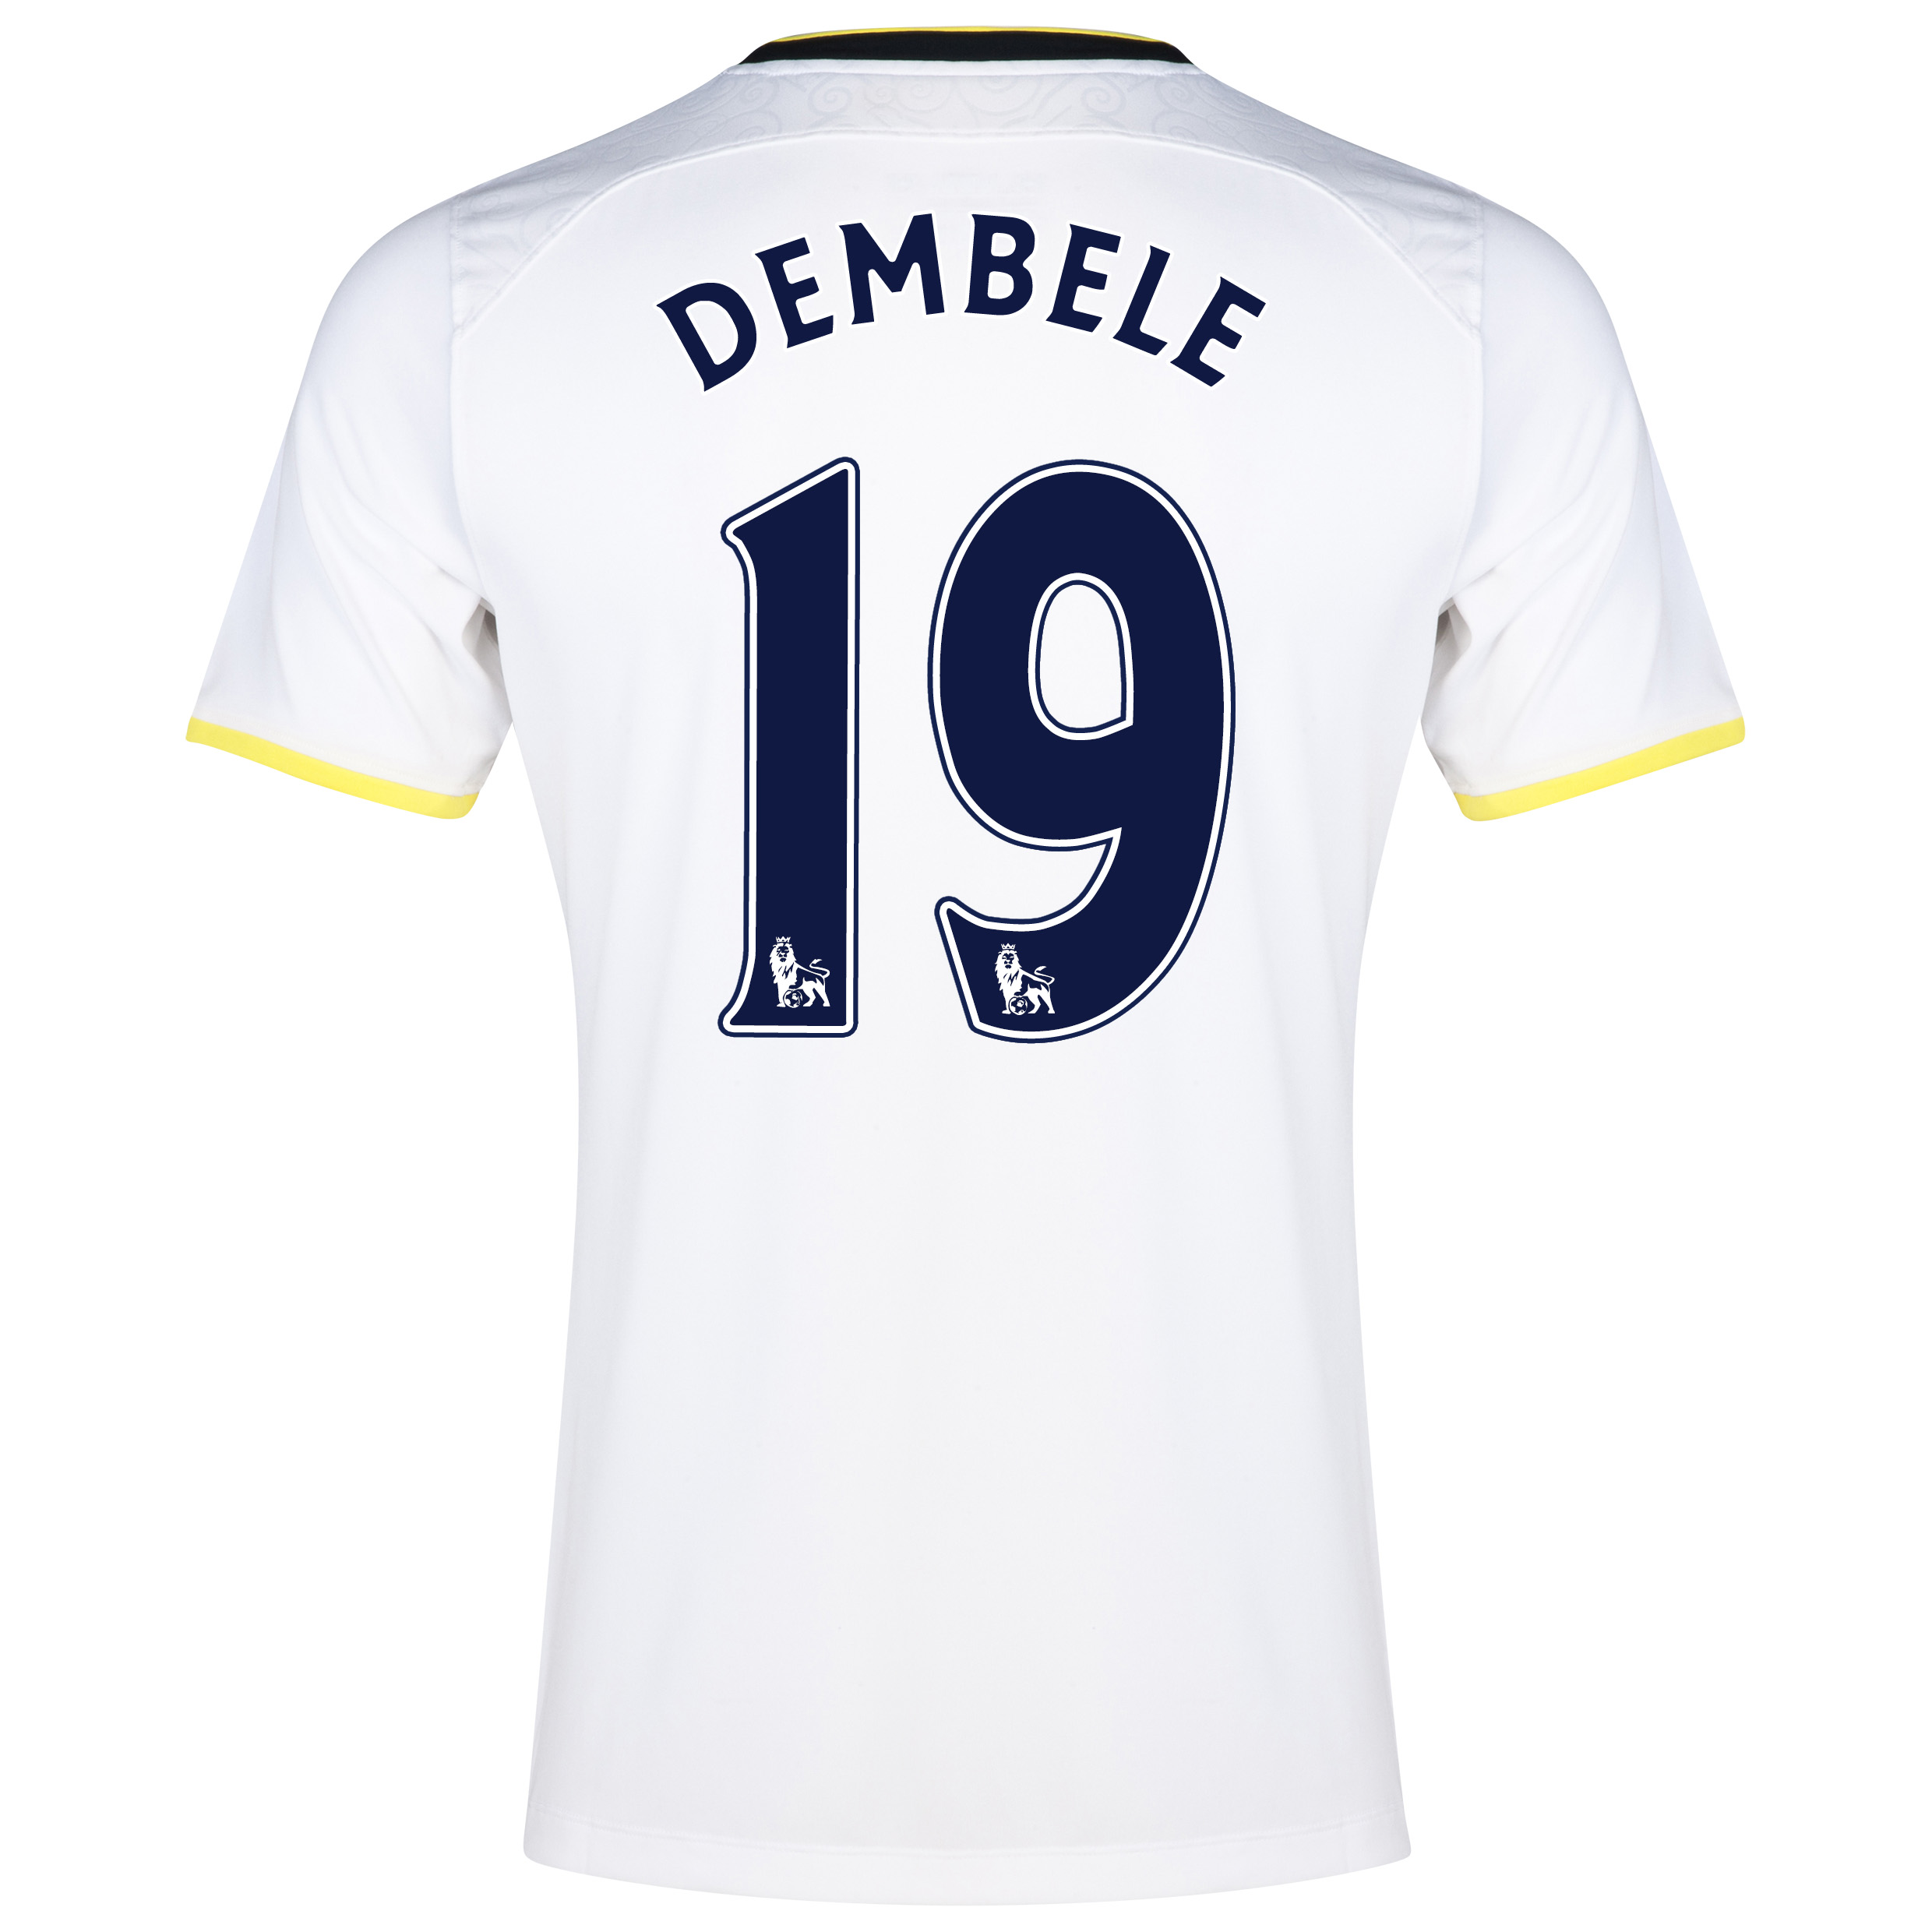 Tottenham Hotspur Home Shirt 2014/15 with Dembele 19 printing